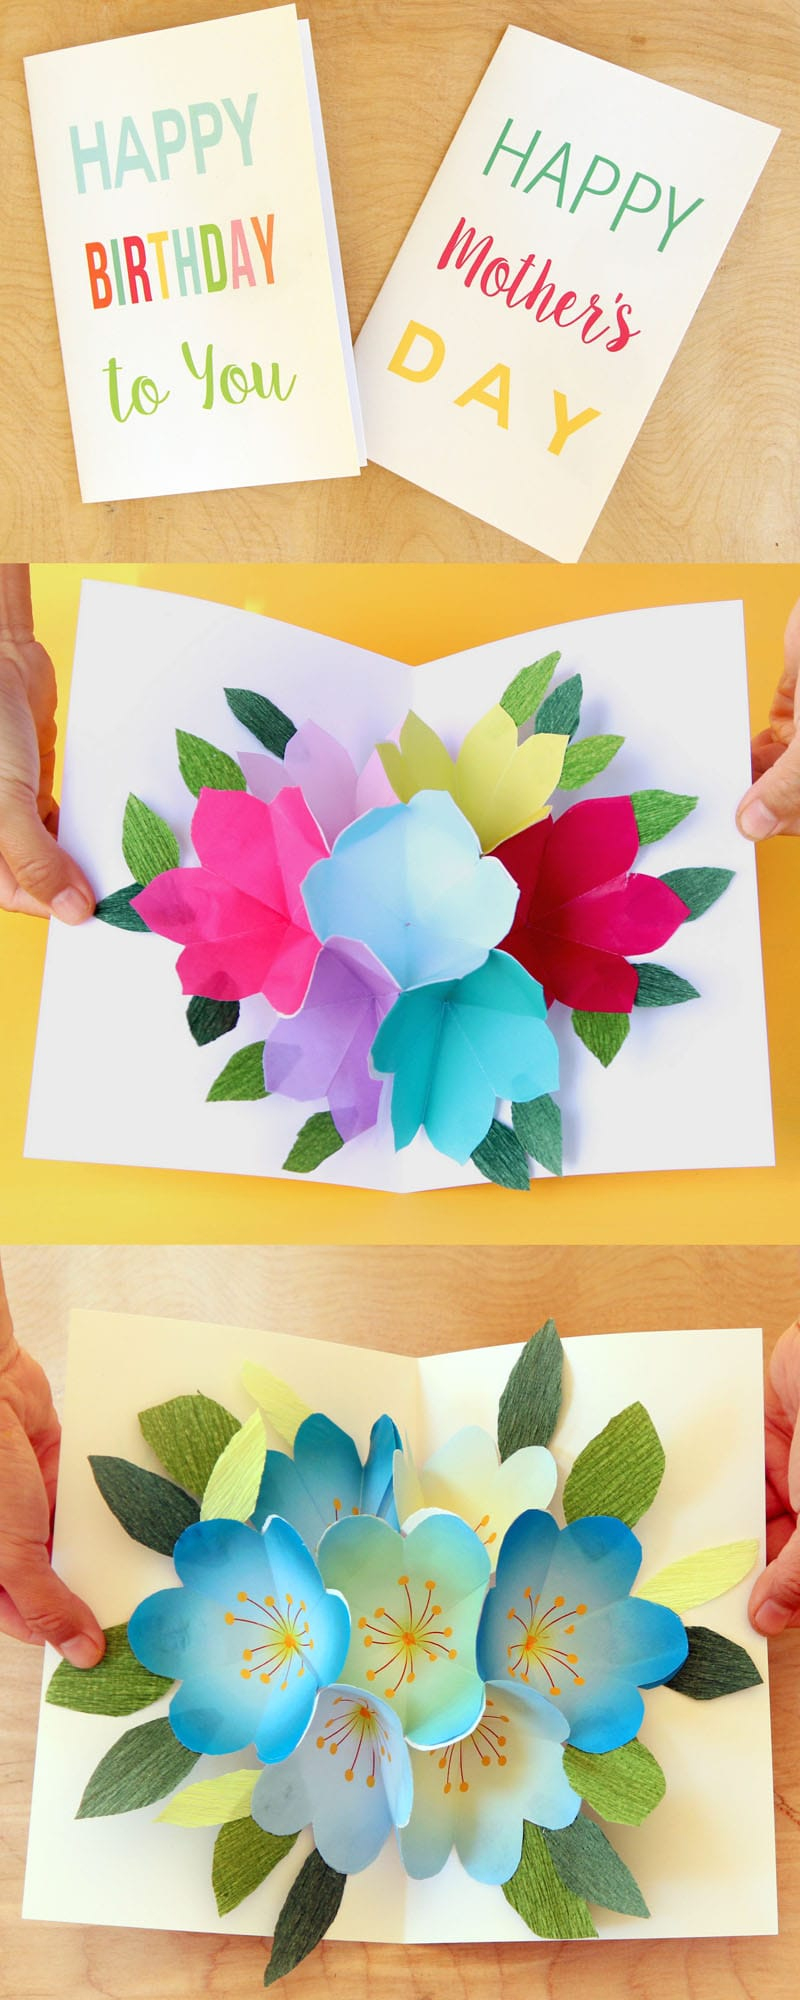 Free Printable Happy Birthday Card With Pop Up Bouquet - A Piece Of - Free Printable Birthday Cards For Your Best Friend